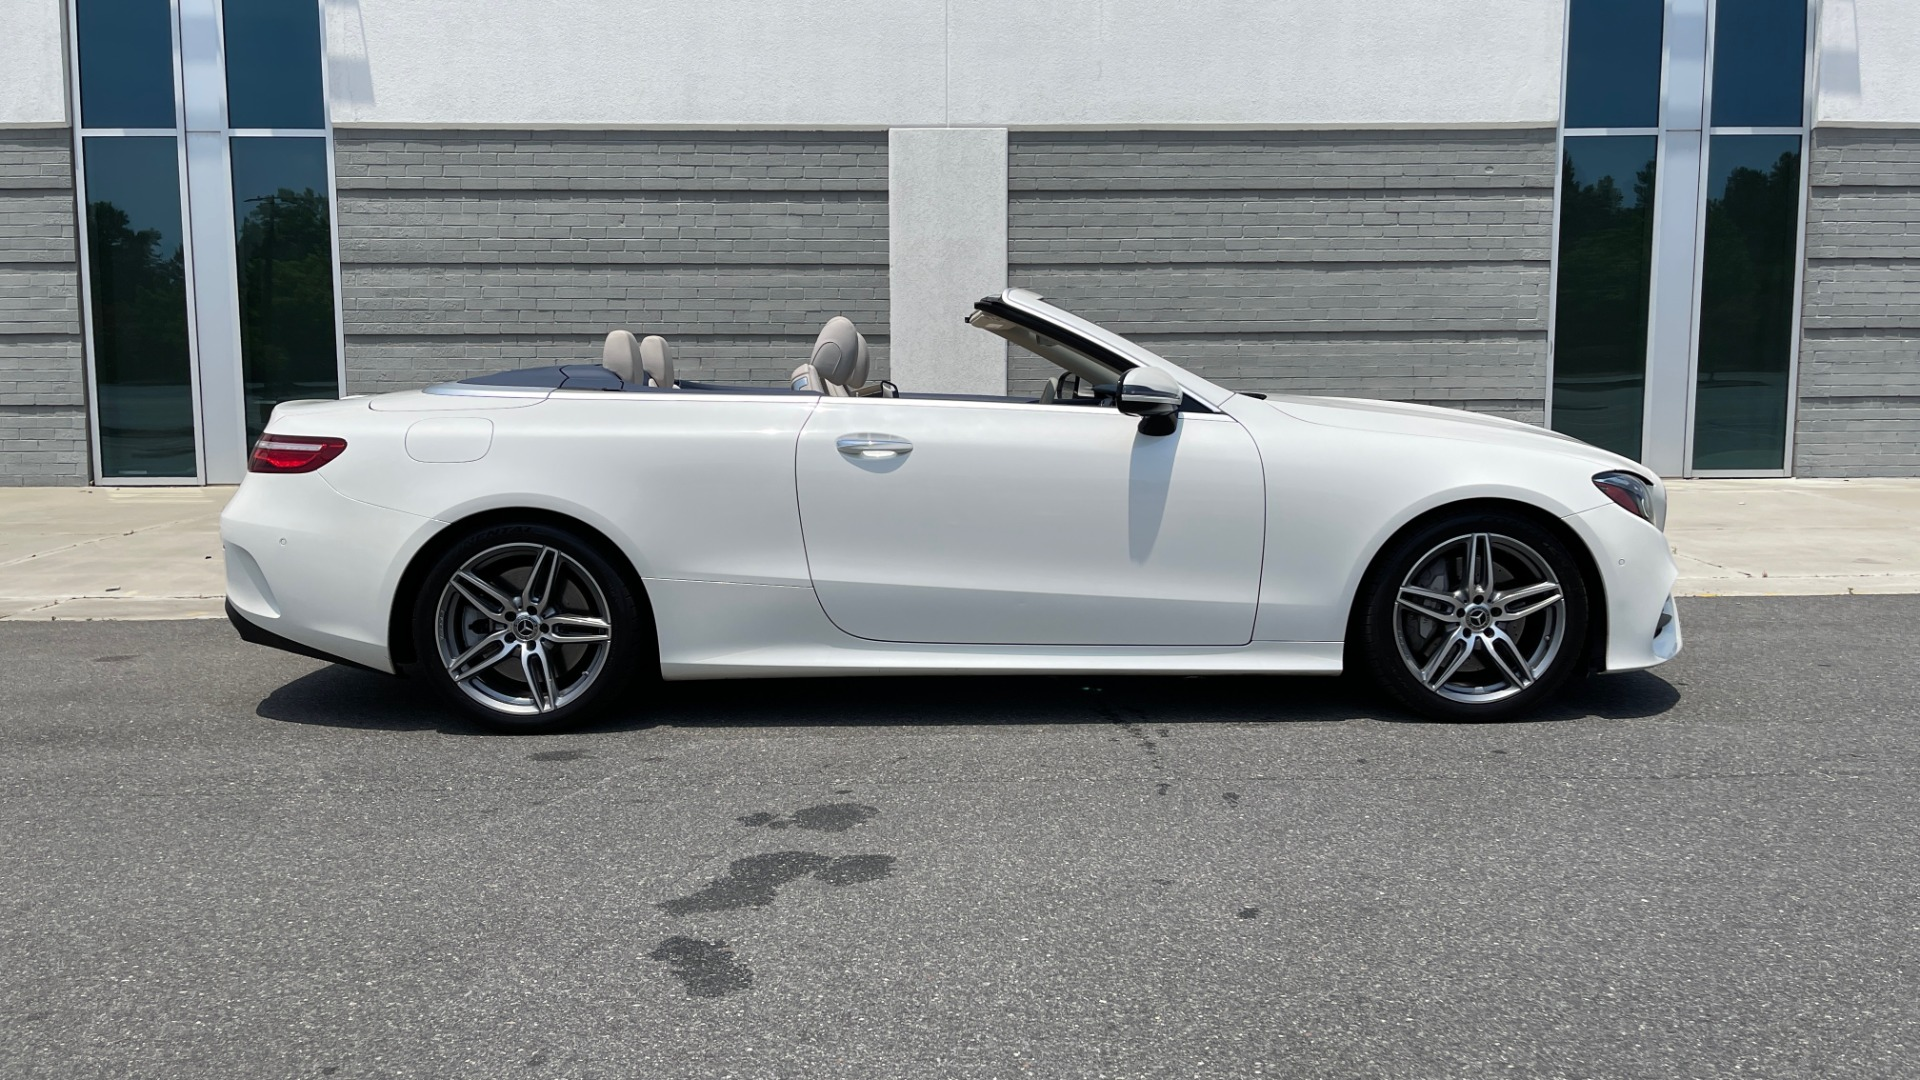 Used 2018 Mercedes-Benz E-CLASS E 400 CABRIOLET / PREM PKG / AMG LINE / NAV / REARVIEW for sale Sold at Formula Imports in Charlotte NC 28227 4